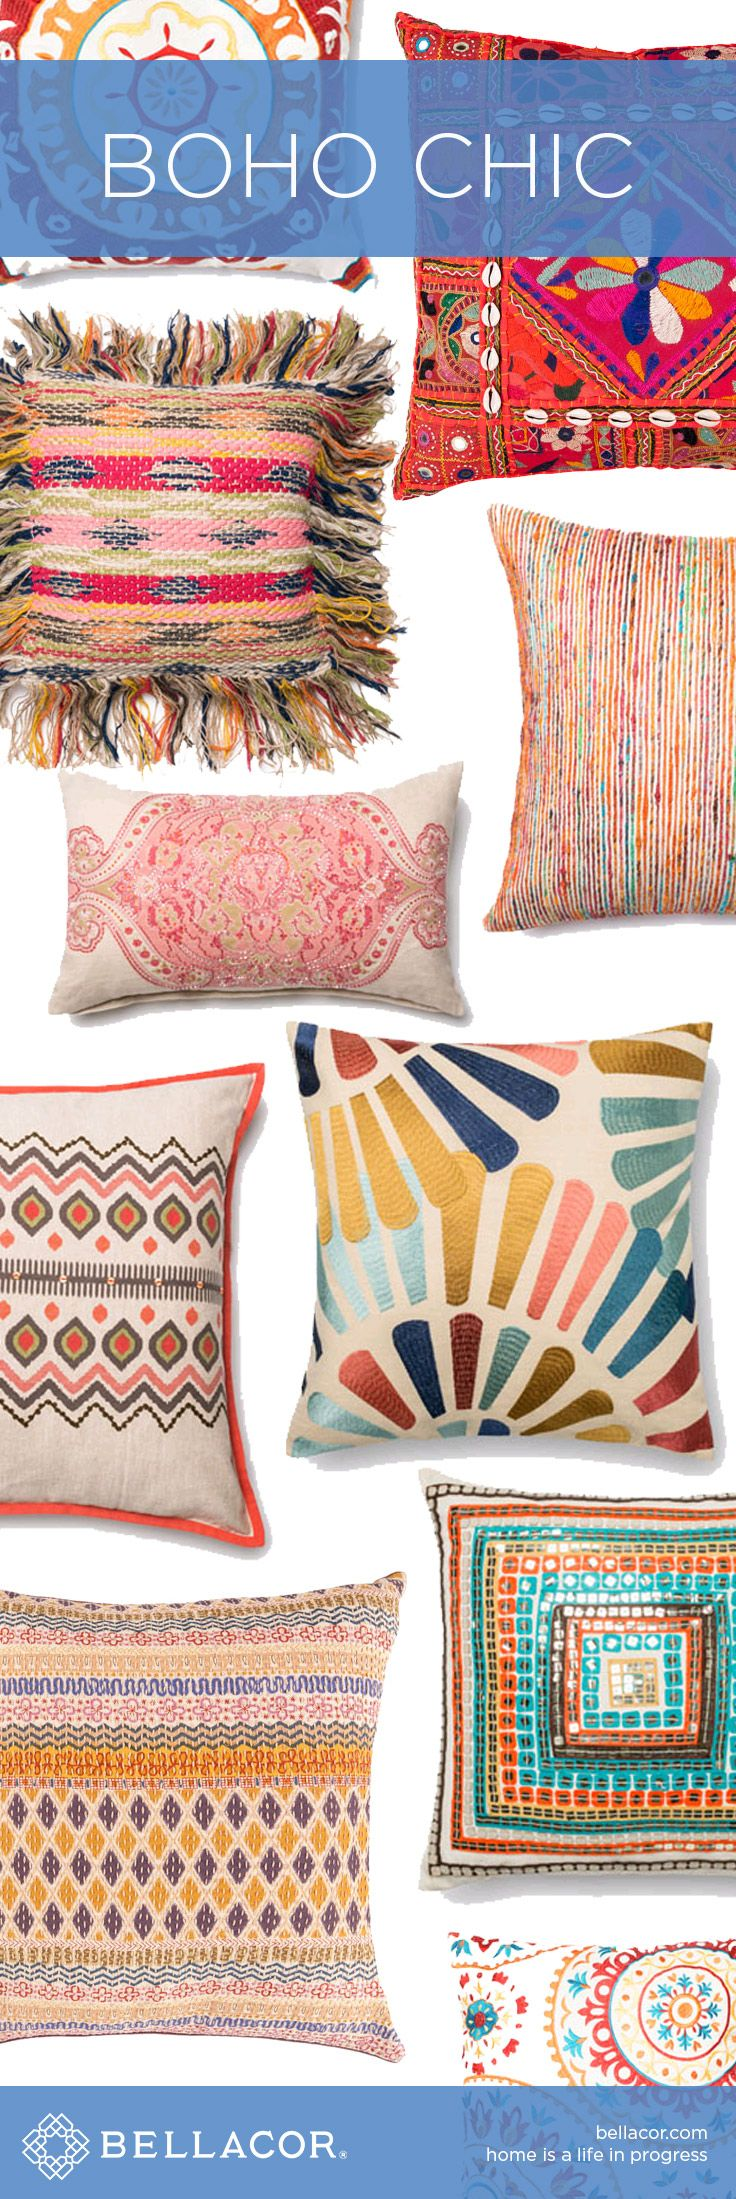 shop our selection of boho chic pillows bedding and textiles atu2026